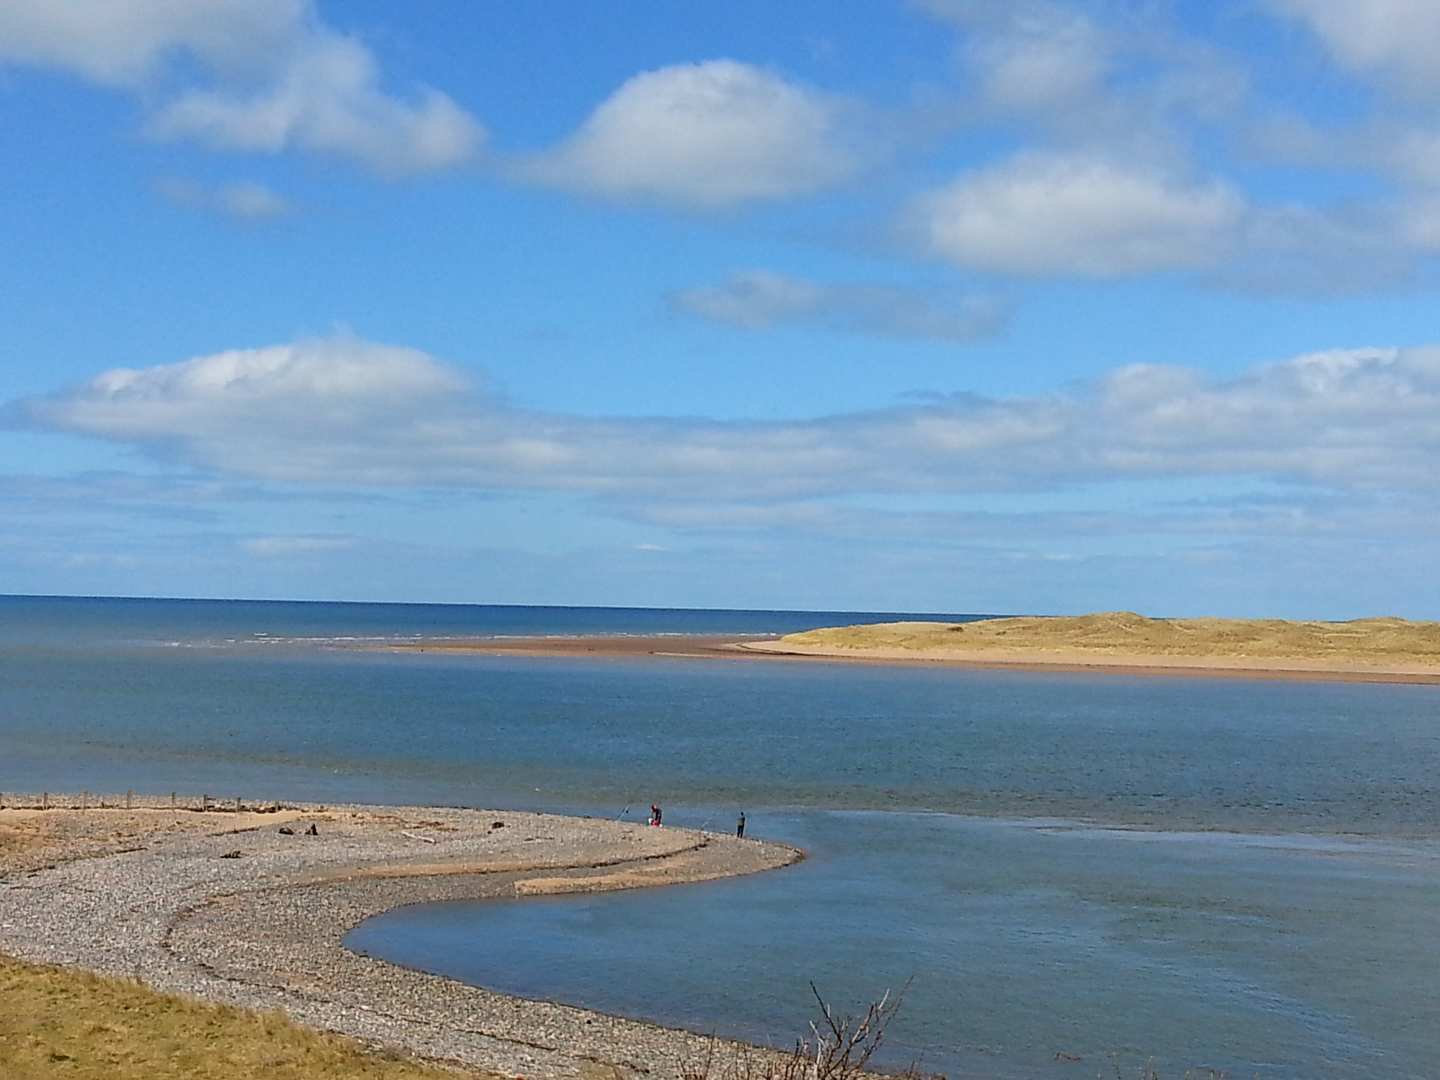 The seaside at Eskmeal Dunes, Cumbria, perfect for a walking holiday